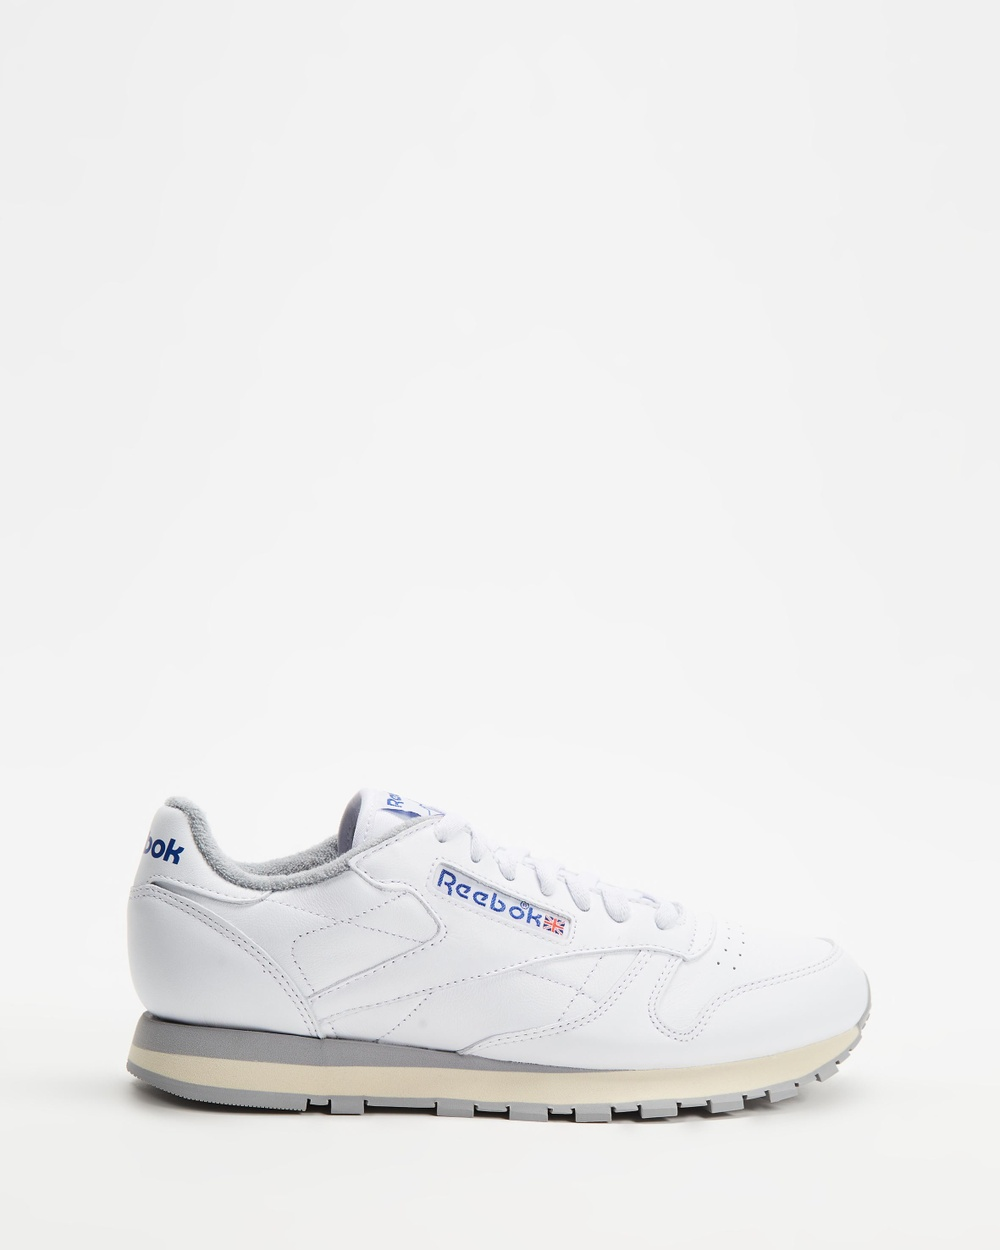 Reebok Classic Leather R12 Unisex Lifestyle Sneakers White, Tin Grey, Sandtrap, Royal & Red